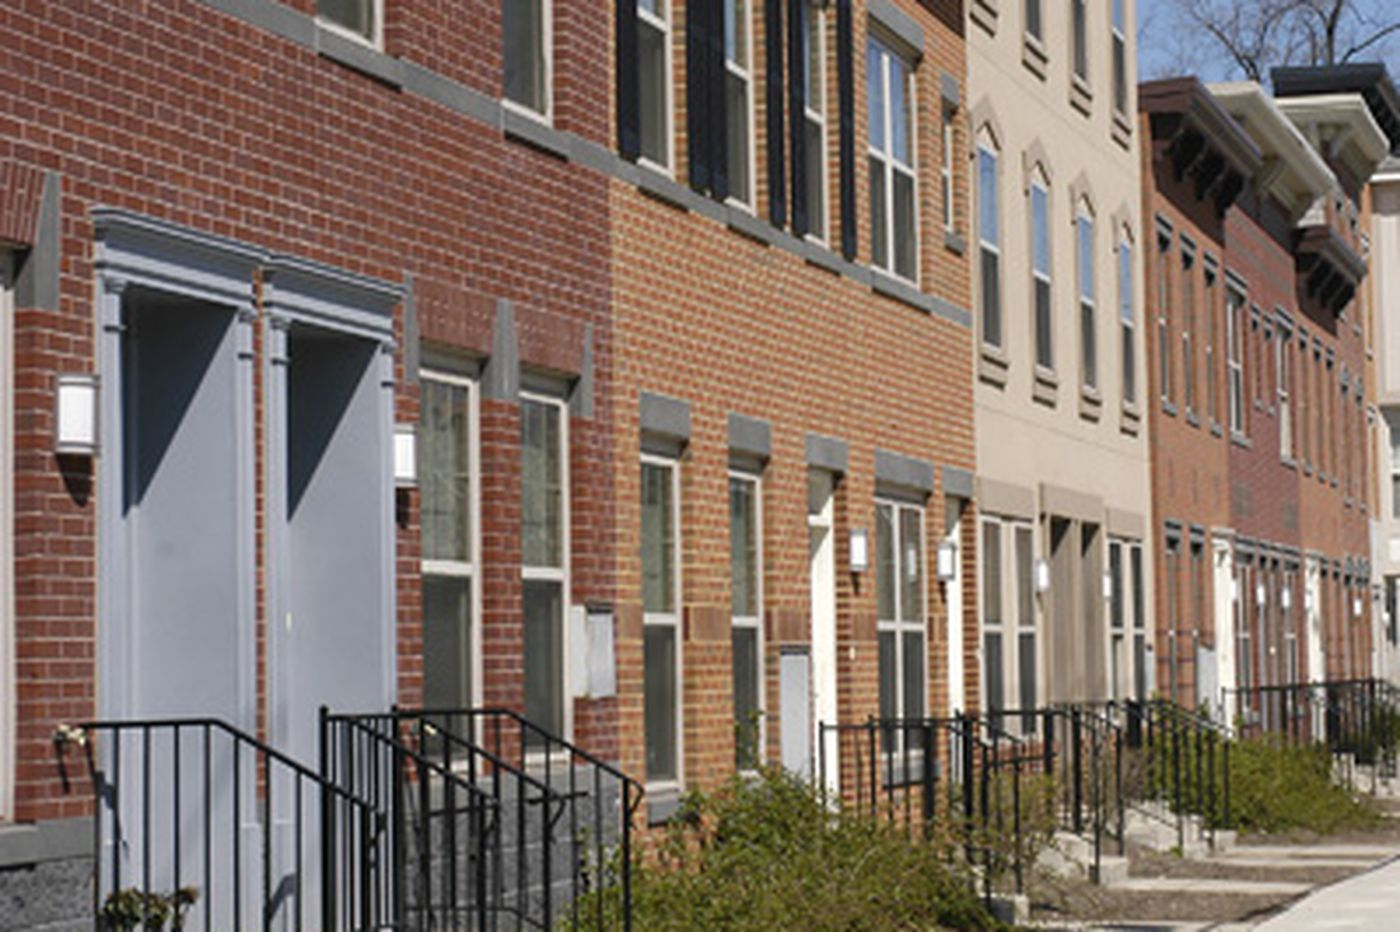 Thousands of Philadelphia homeowners are appealing higher tax bills on their properties